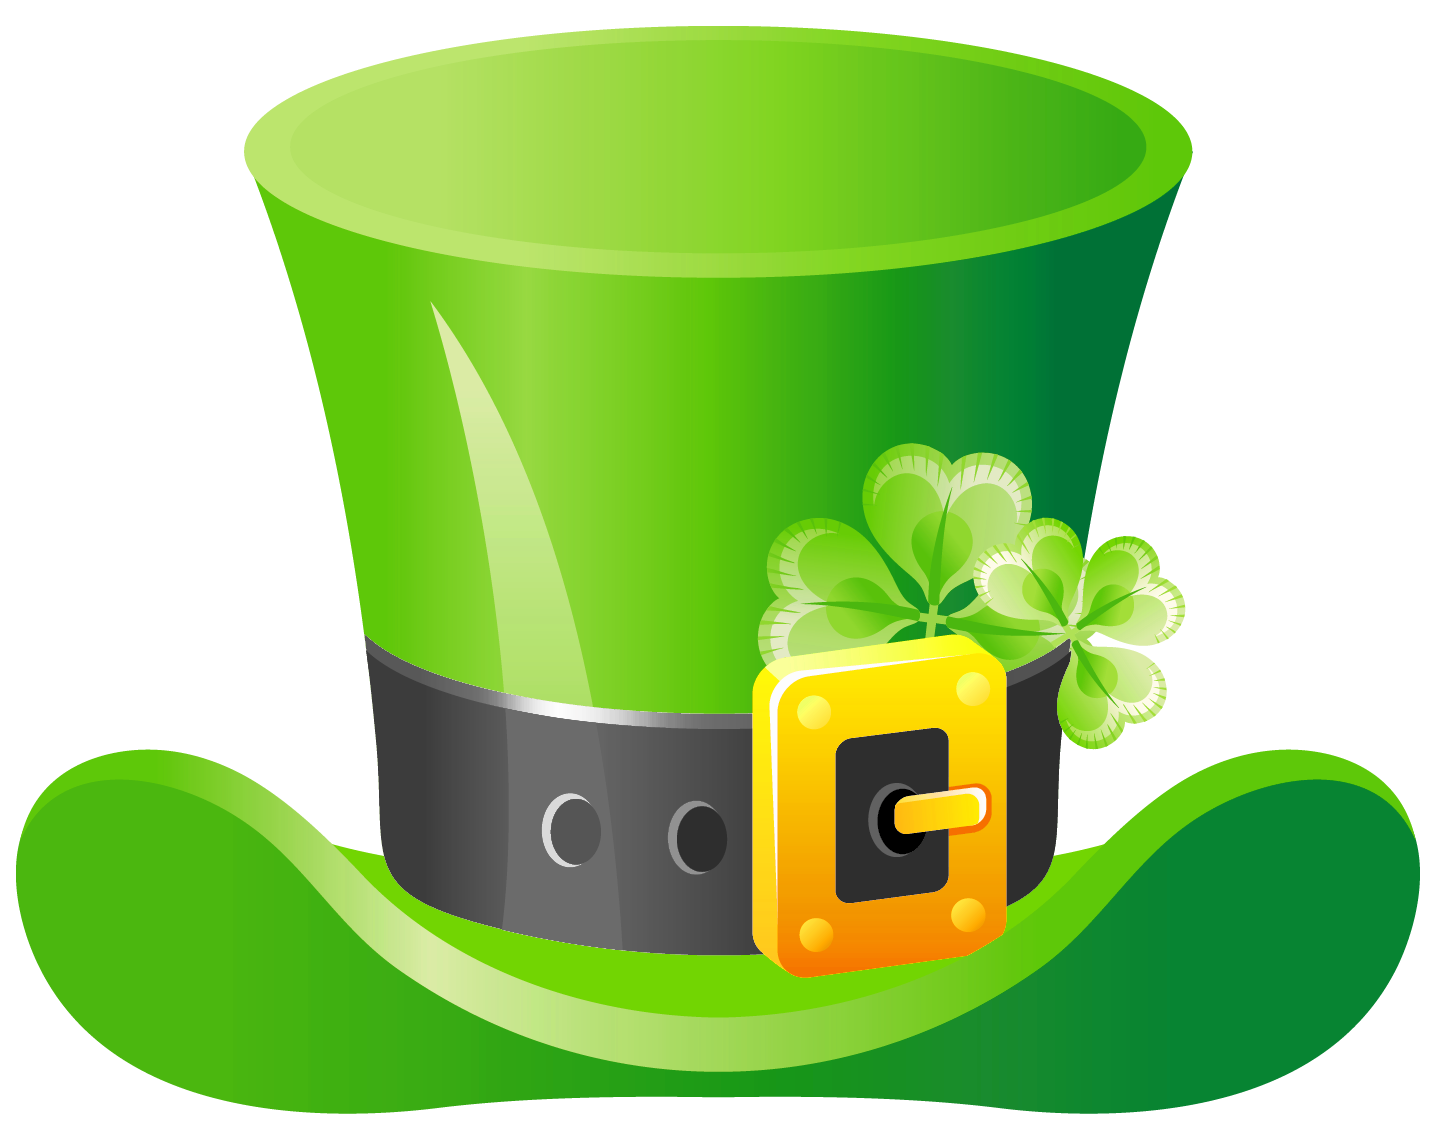 St Patricks Day Transparent Background - St Patricks Day HD PNG